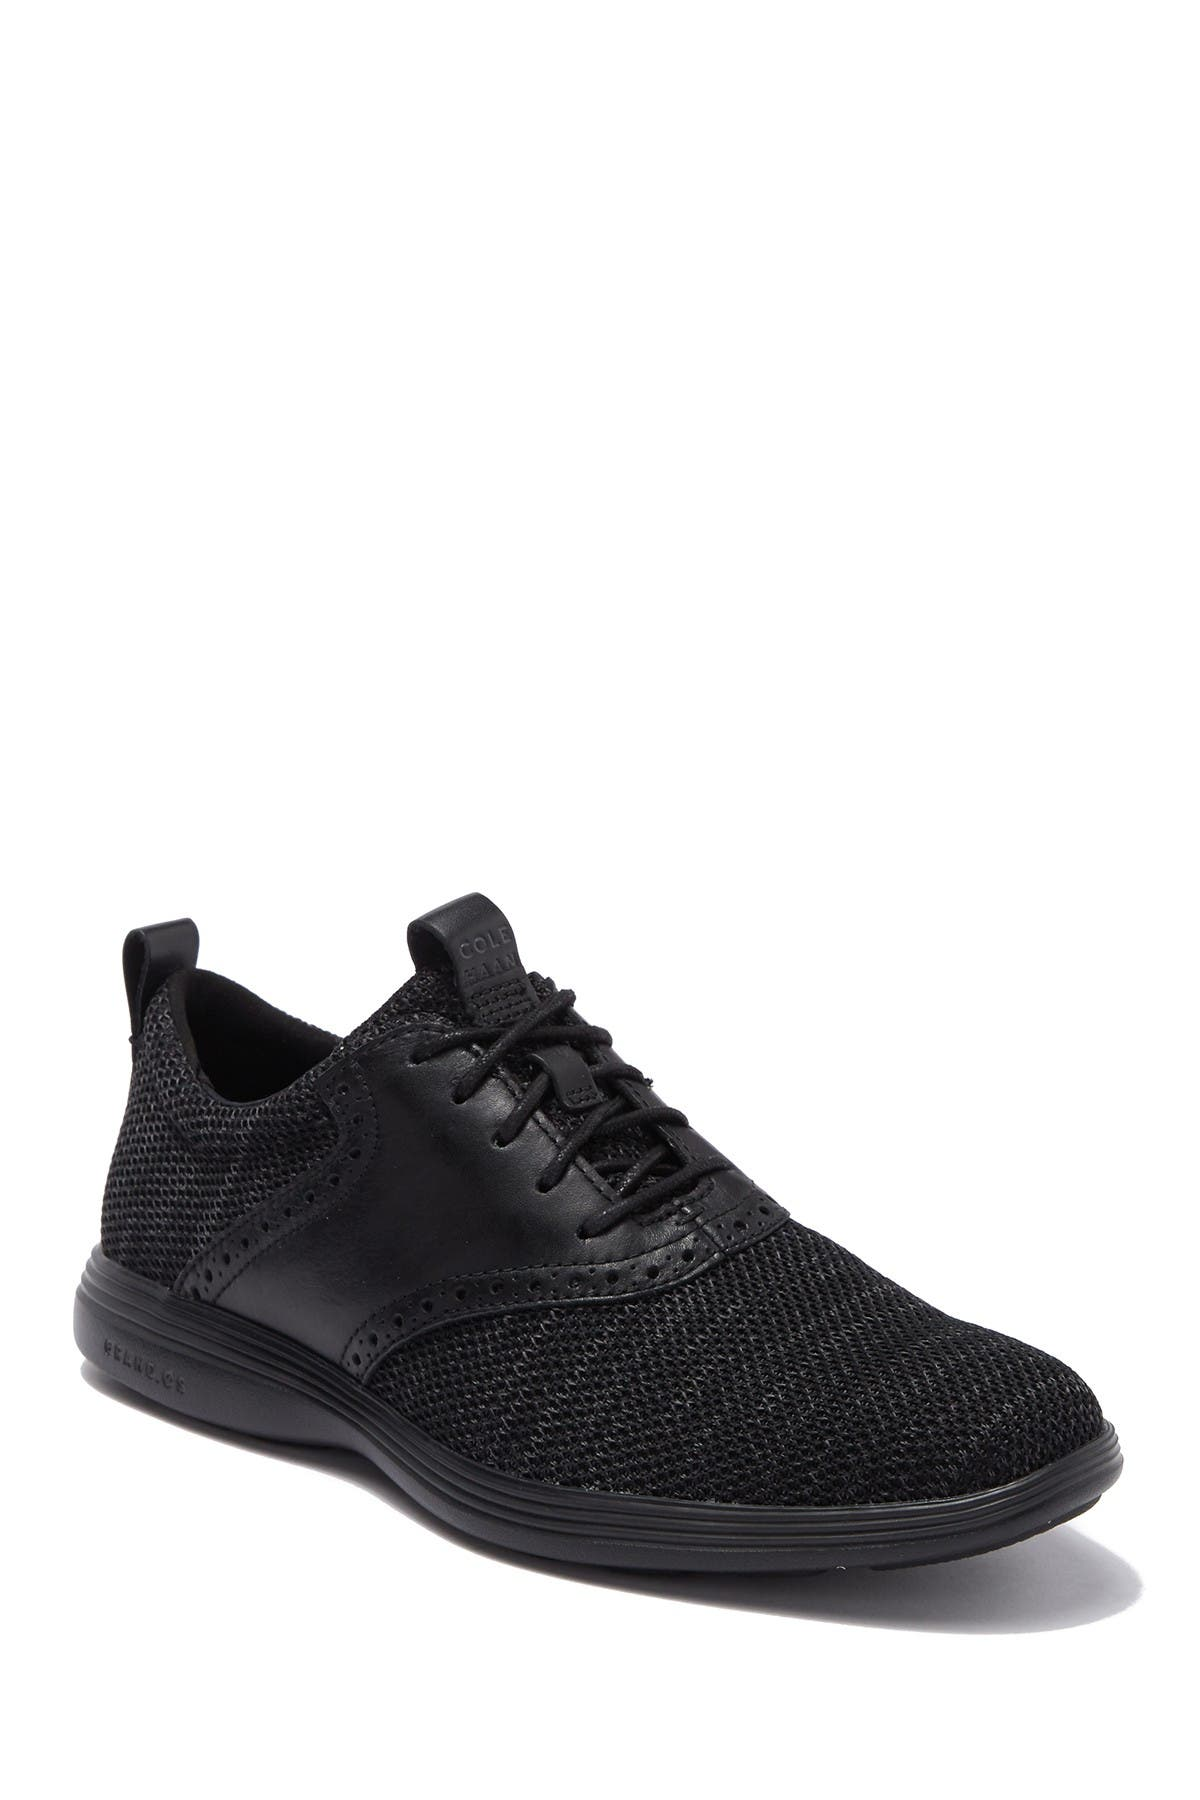 Cole Haan   Grand Tour Knit Oxford